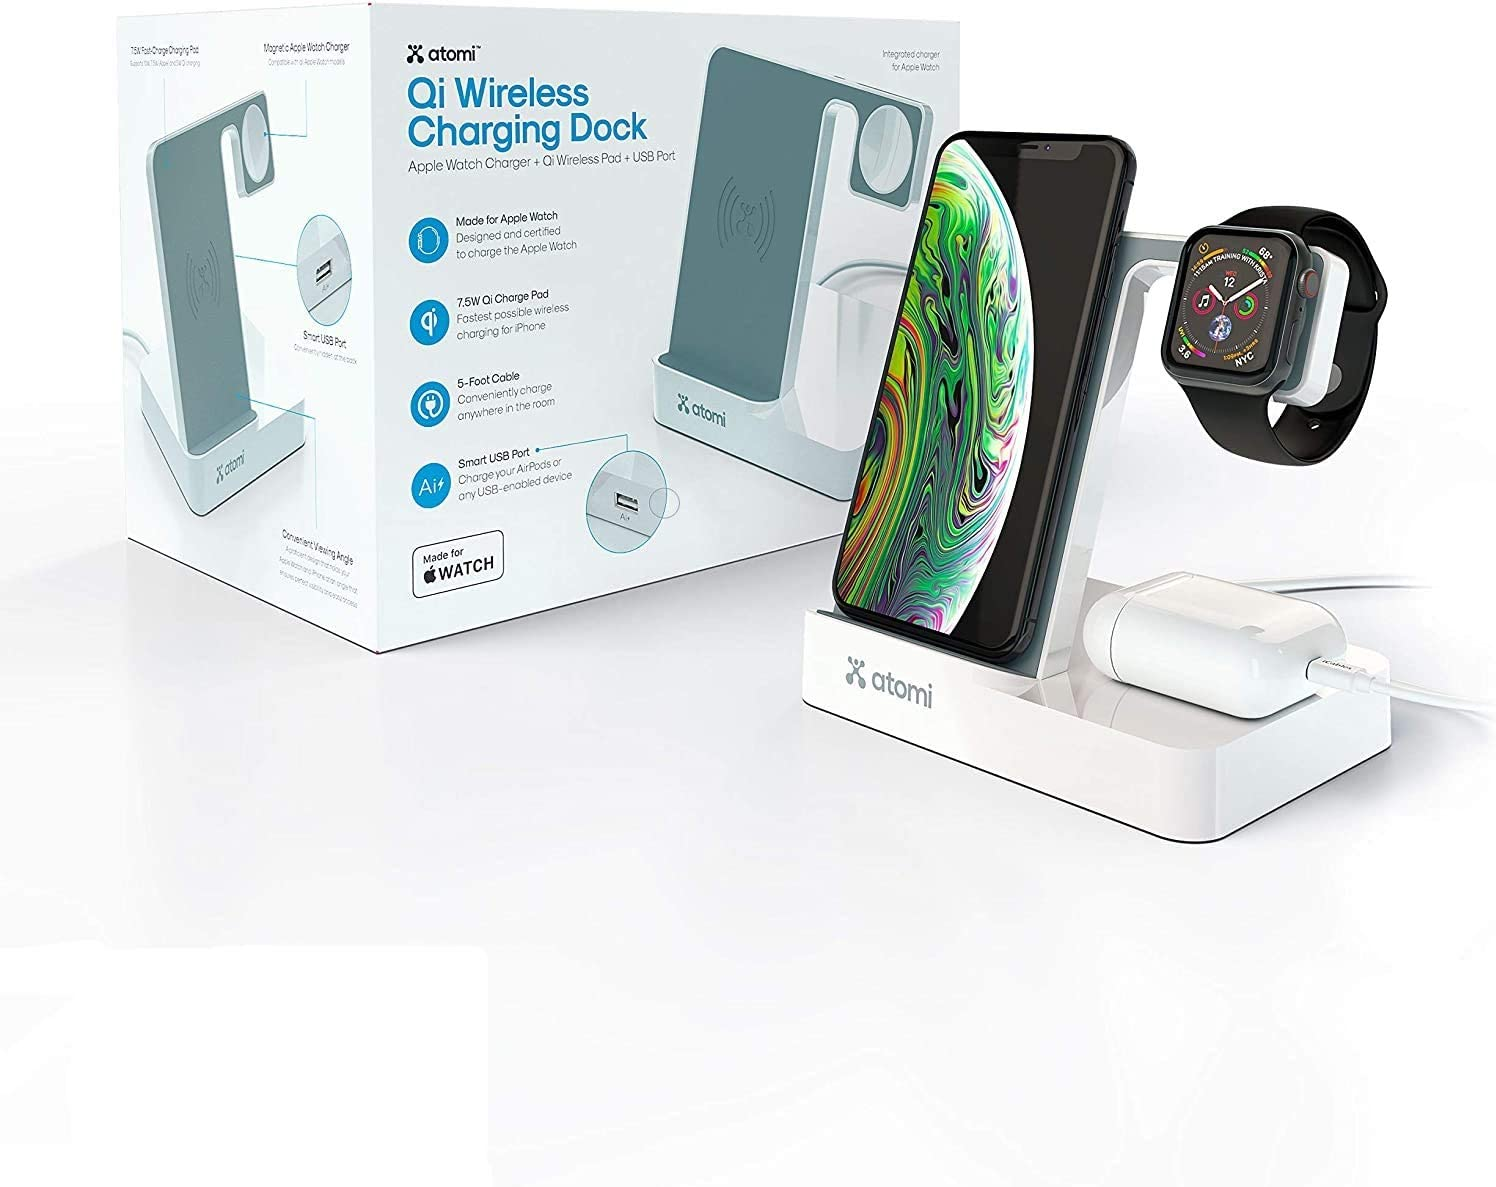 Atomi iPhone Charging Dock + Apple Watch Charging Stand - Qi Wireless Charging for Devices with a Lightning Connector, Including iPhone Xs, XS Max, XR, X, 8, 8 Plus, Apple Watch Series 1-5 - White